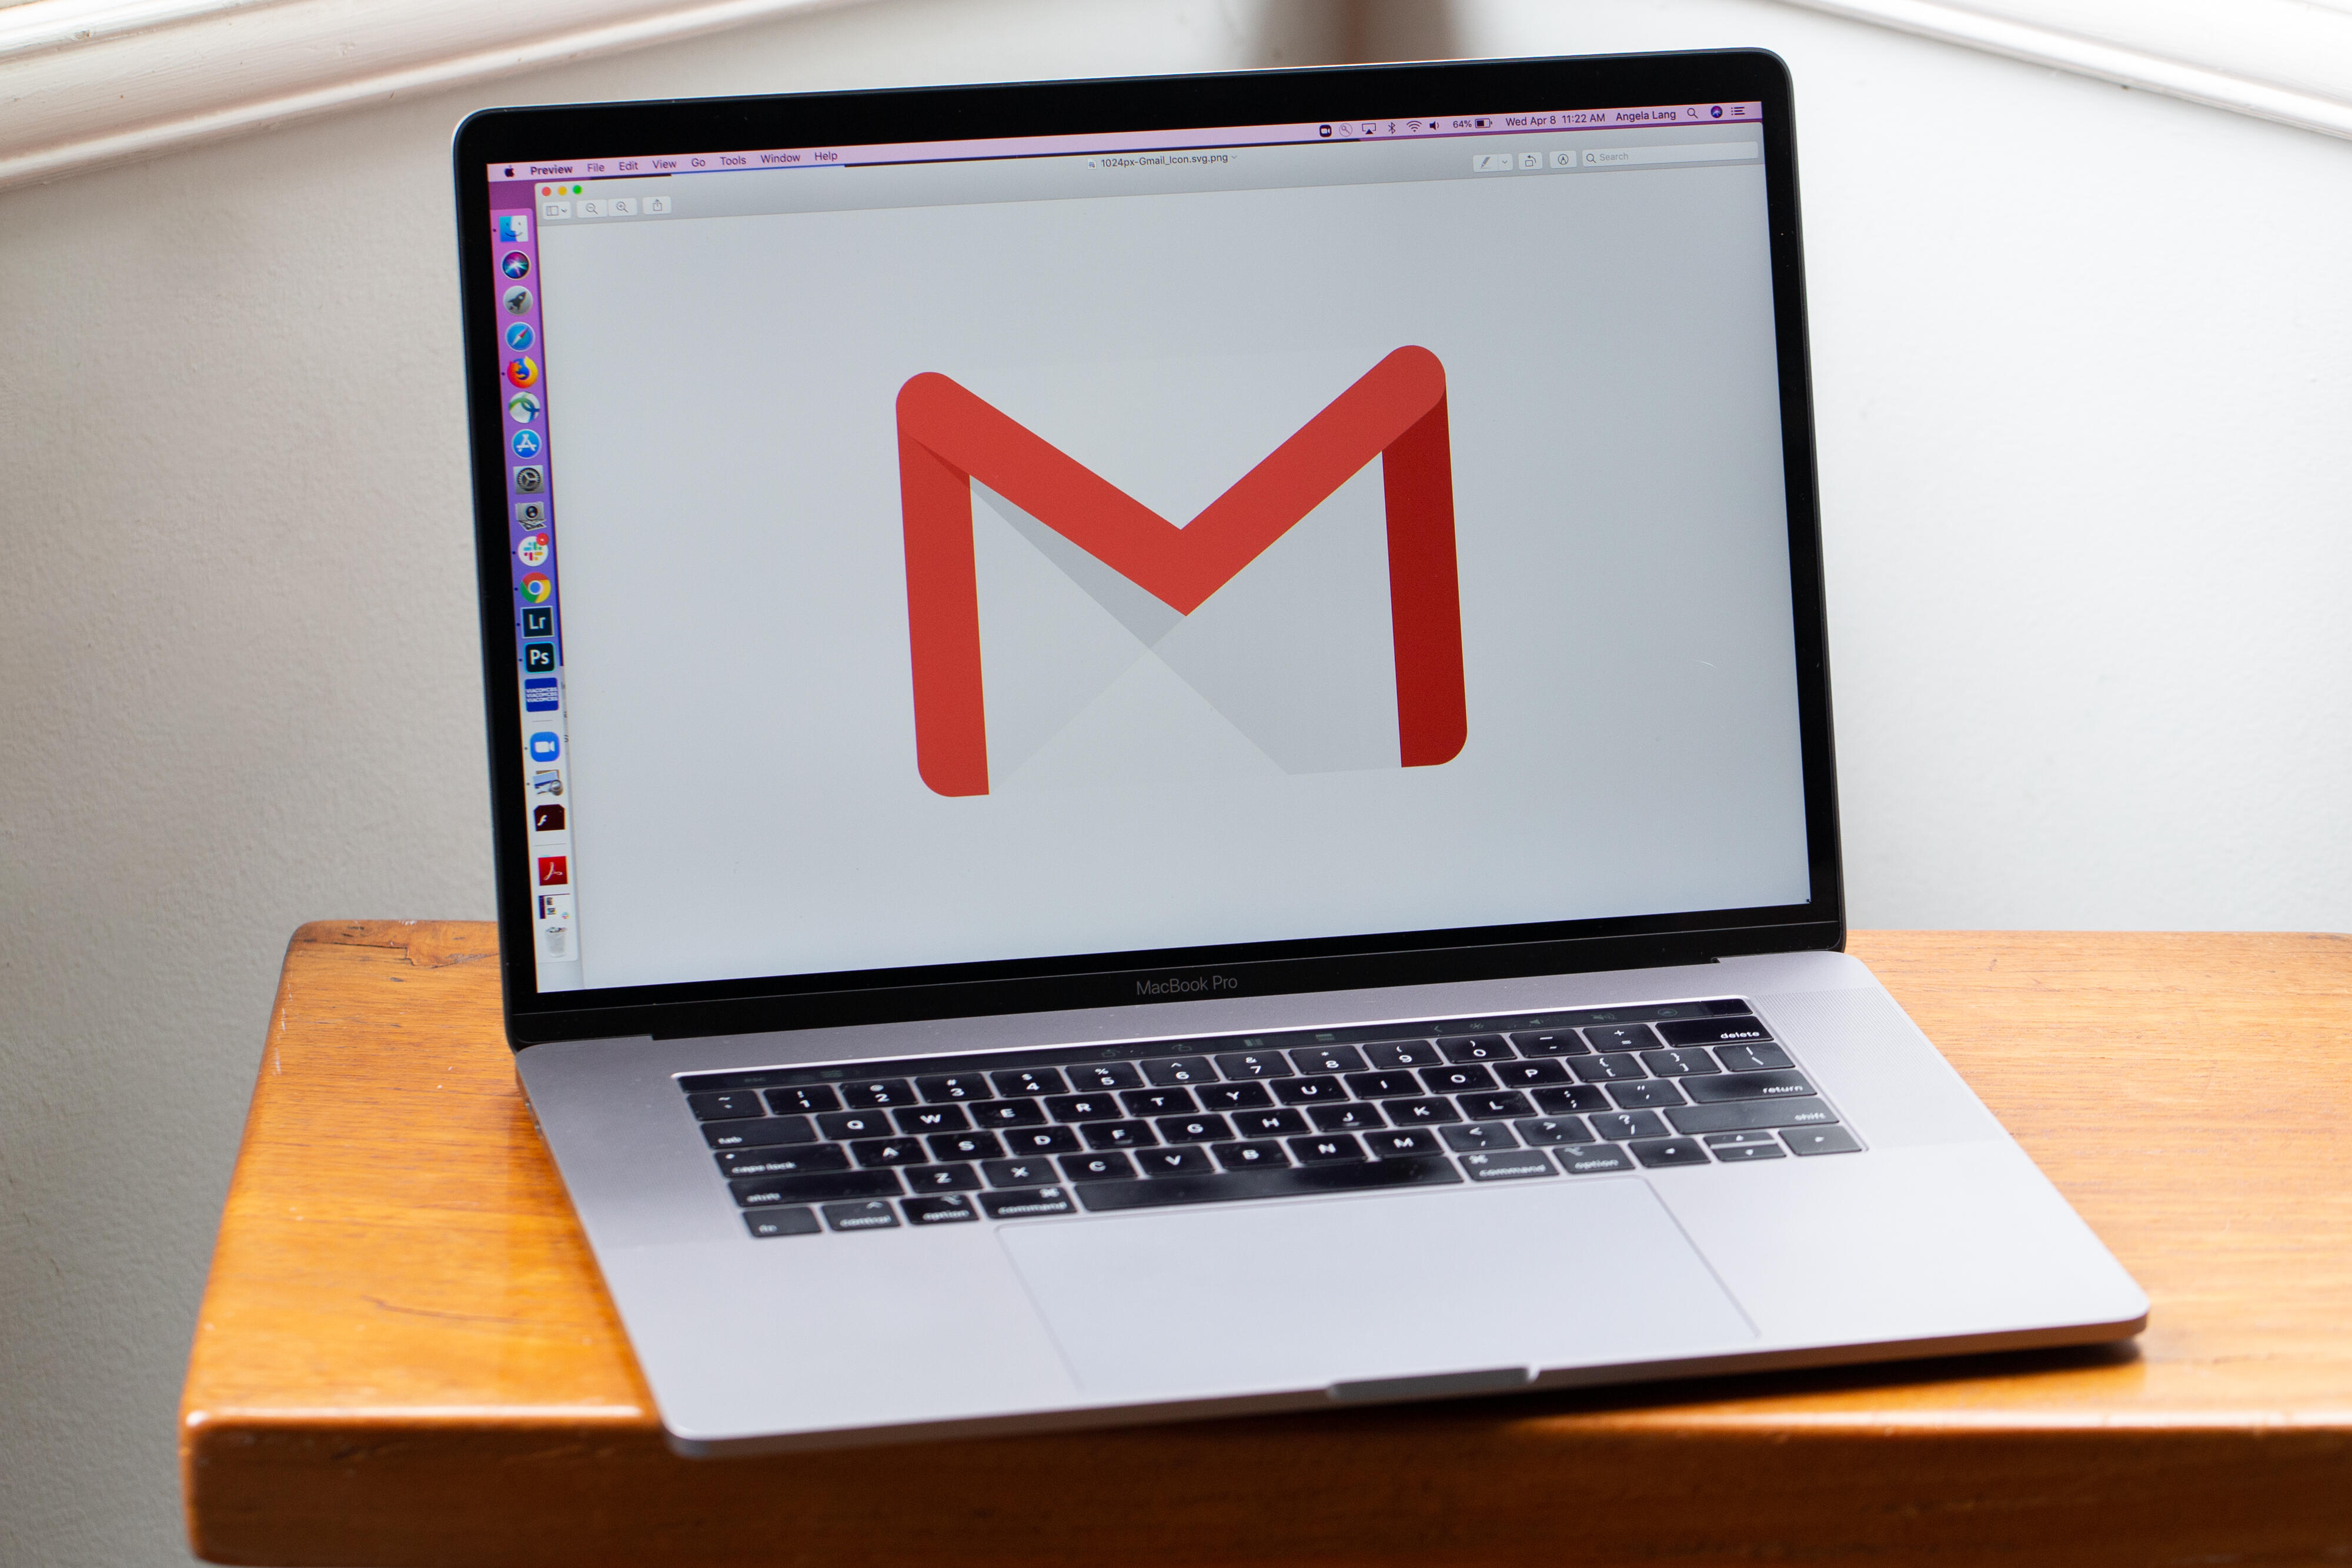 , 10 Gmail tricks you'll use every day – Source CNET Computer News, iBSC Technologies - learning management services, LMS, Wordpress, CMS, Moodle, IT, Email, Web Hosting, Cloud Server,Cloud Computing